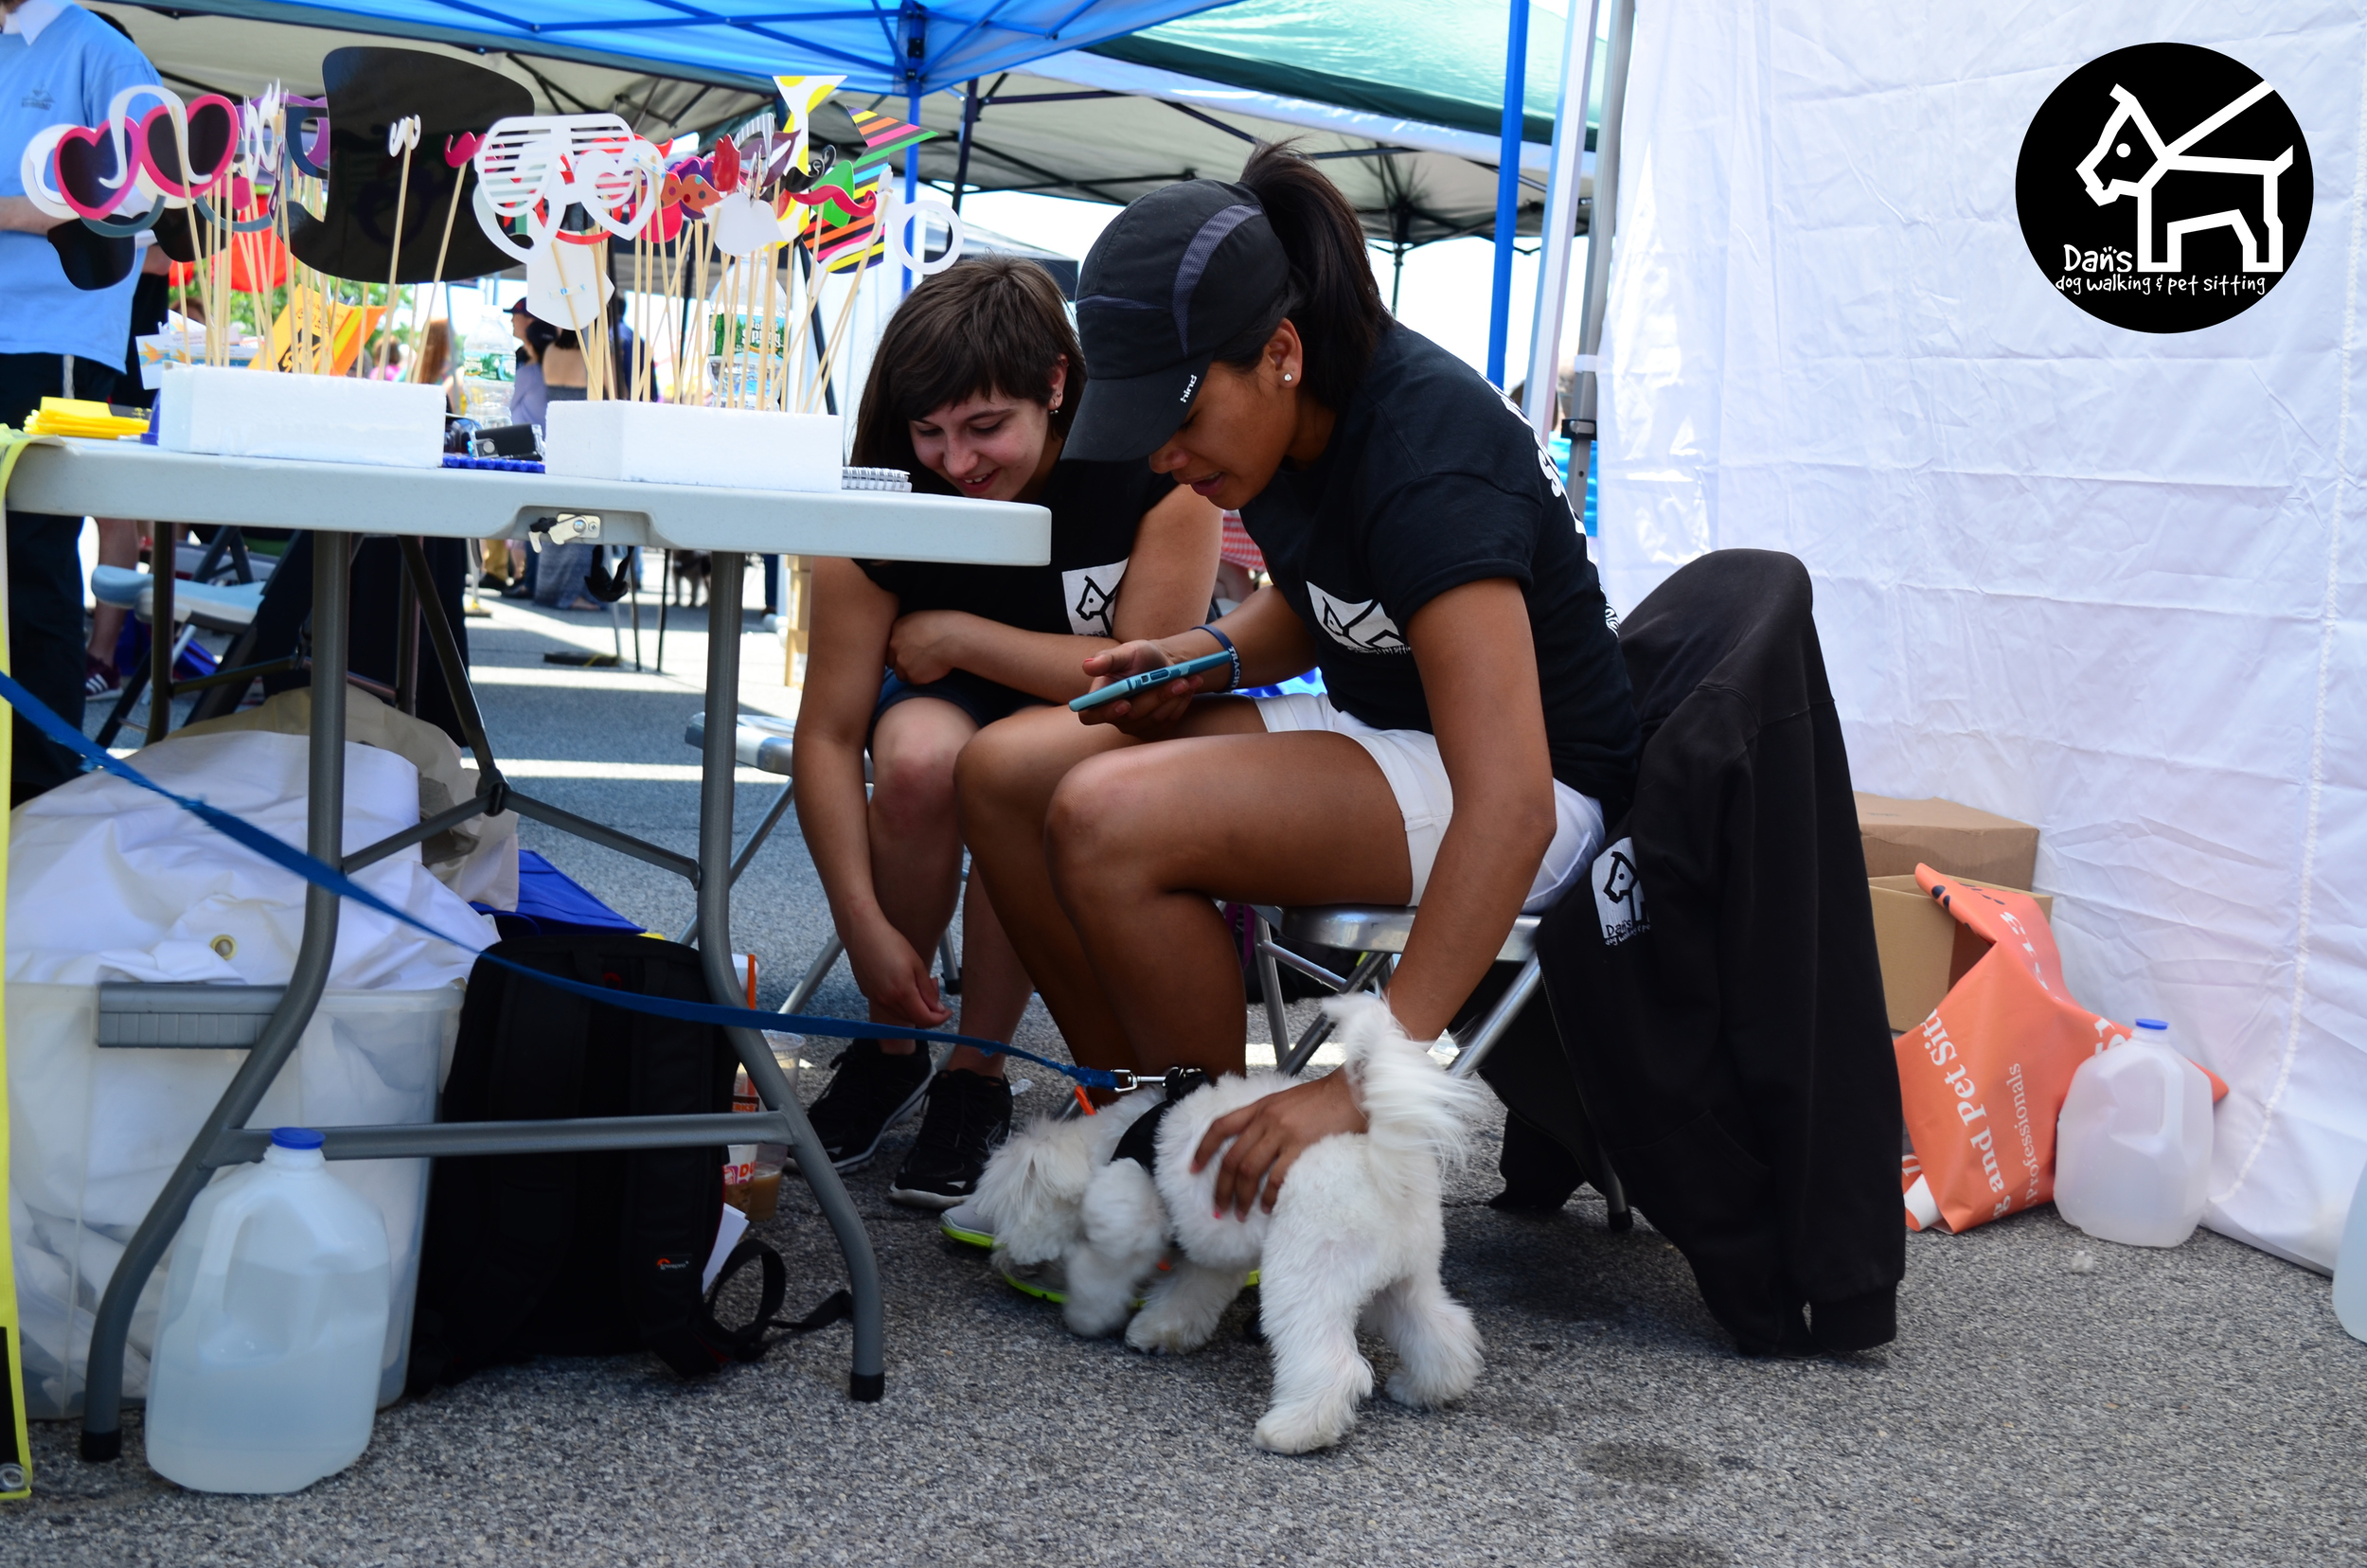 Lara and Becky making friends at Dan's Dog Walking and Pet Sitting Doggie Photo Booth at Harbor Fest 2015.jpg